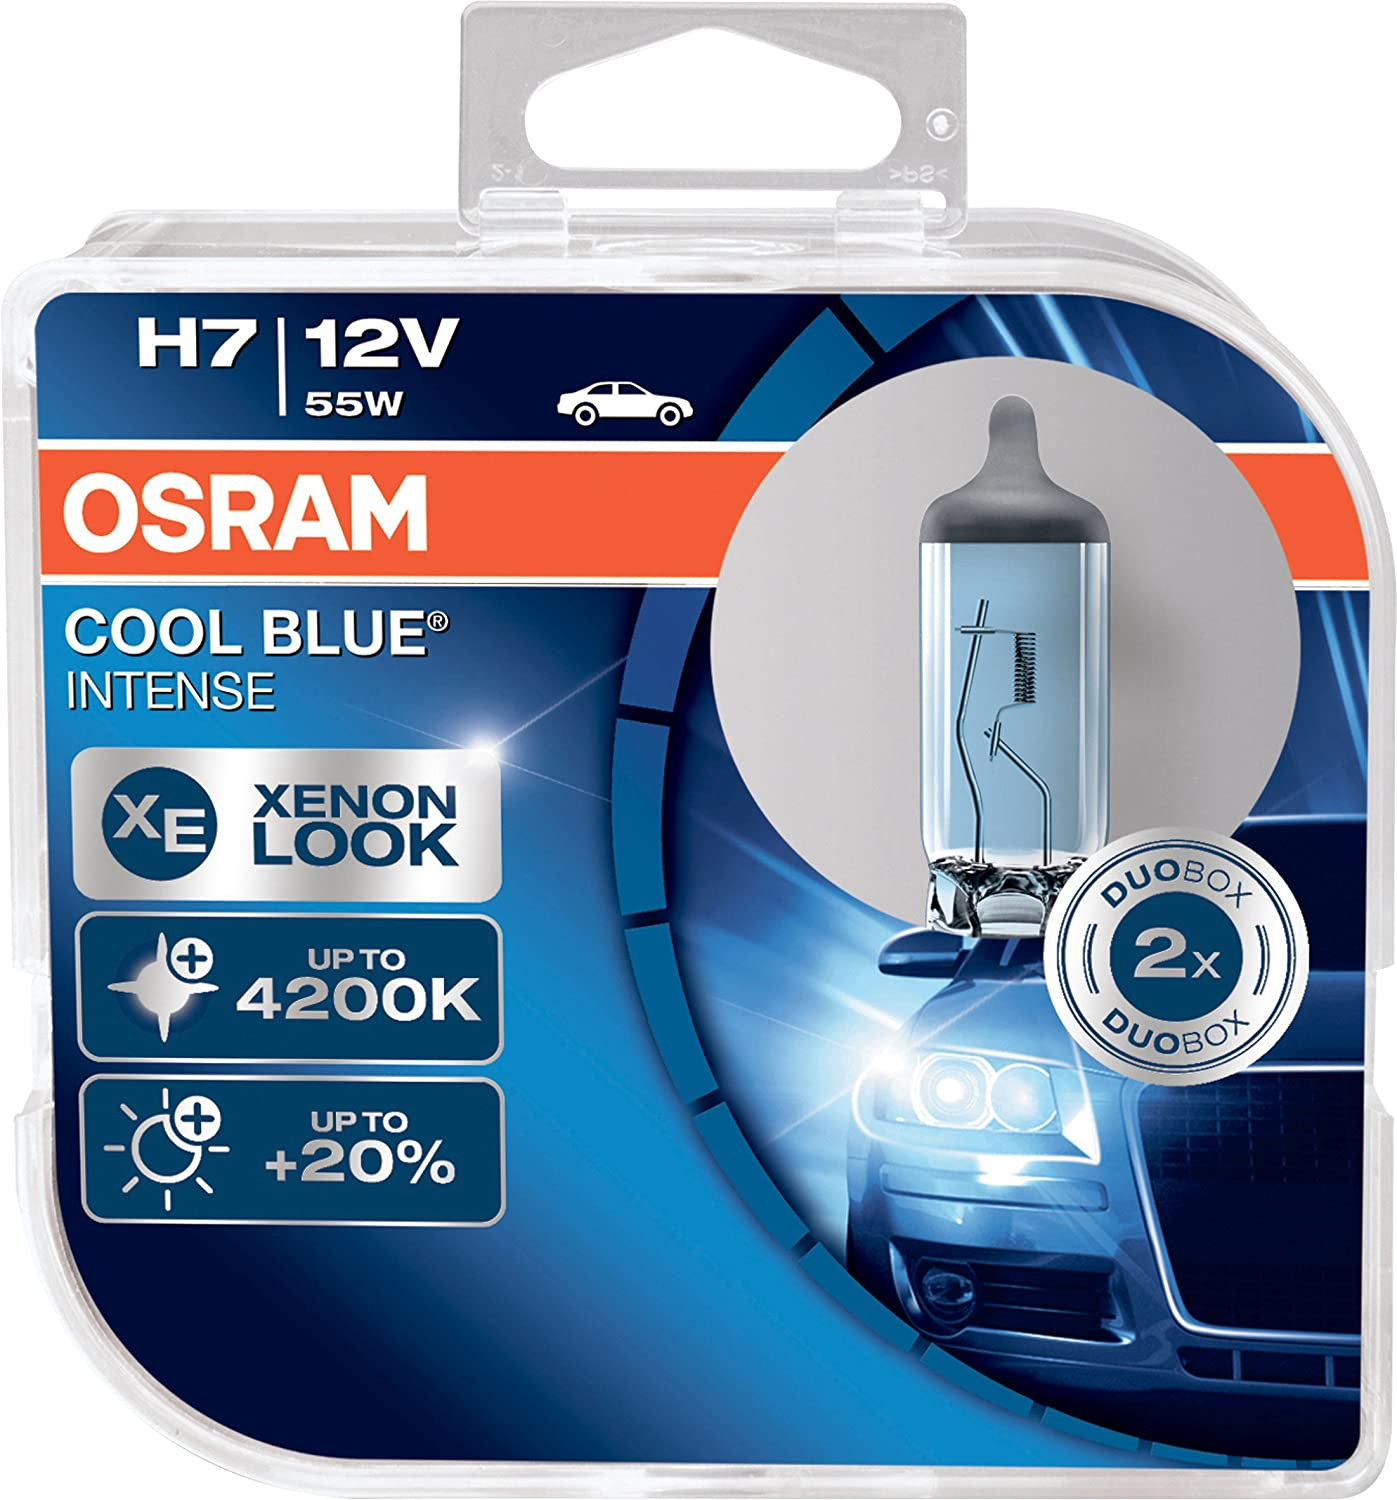 OSRAM COOL BLUE INTENSE H7, headlight bulb for halogen headlamps, xenon effect for white light, 64210CBI-HCB, 12V passenger car, duobox (2 units)